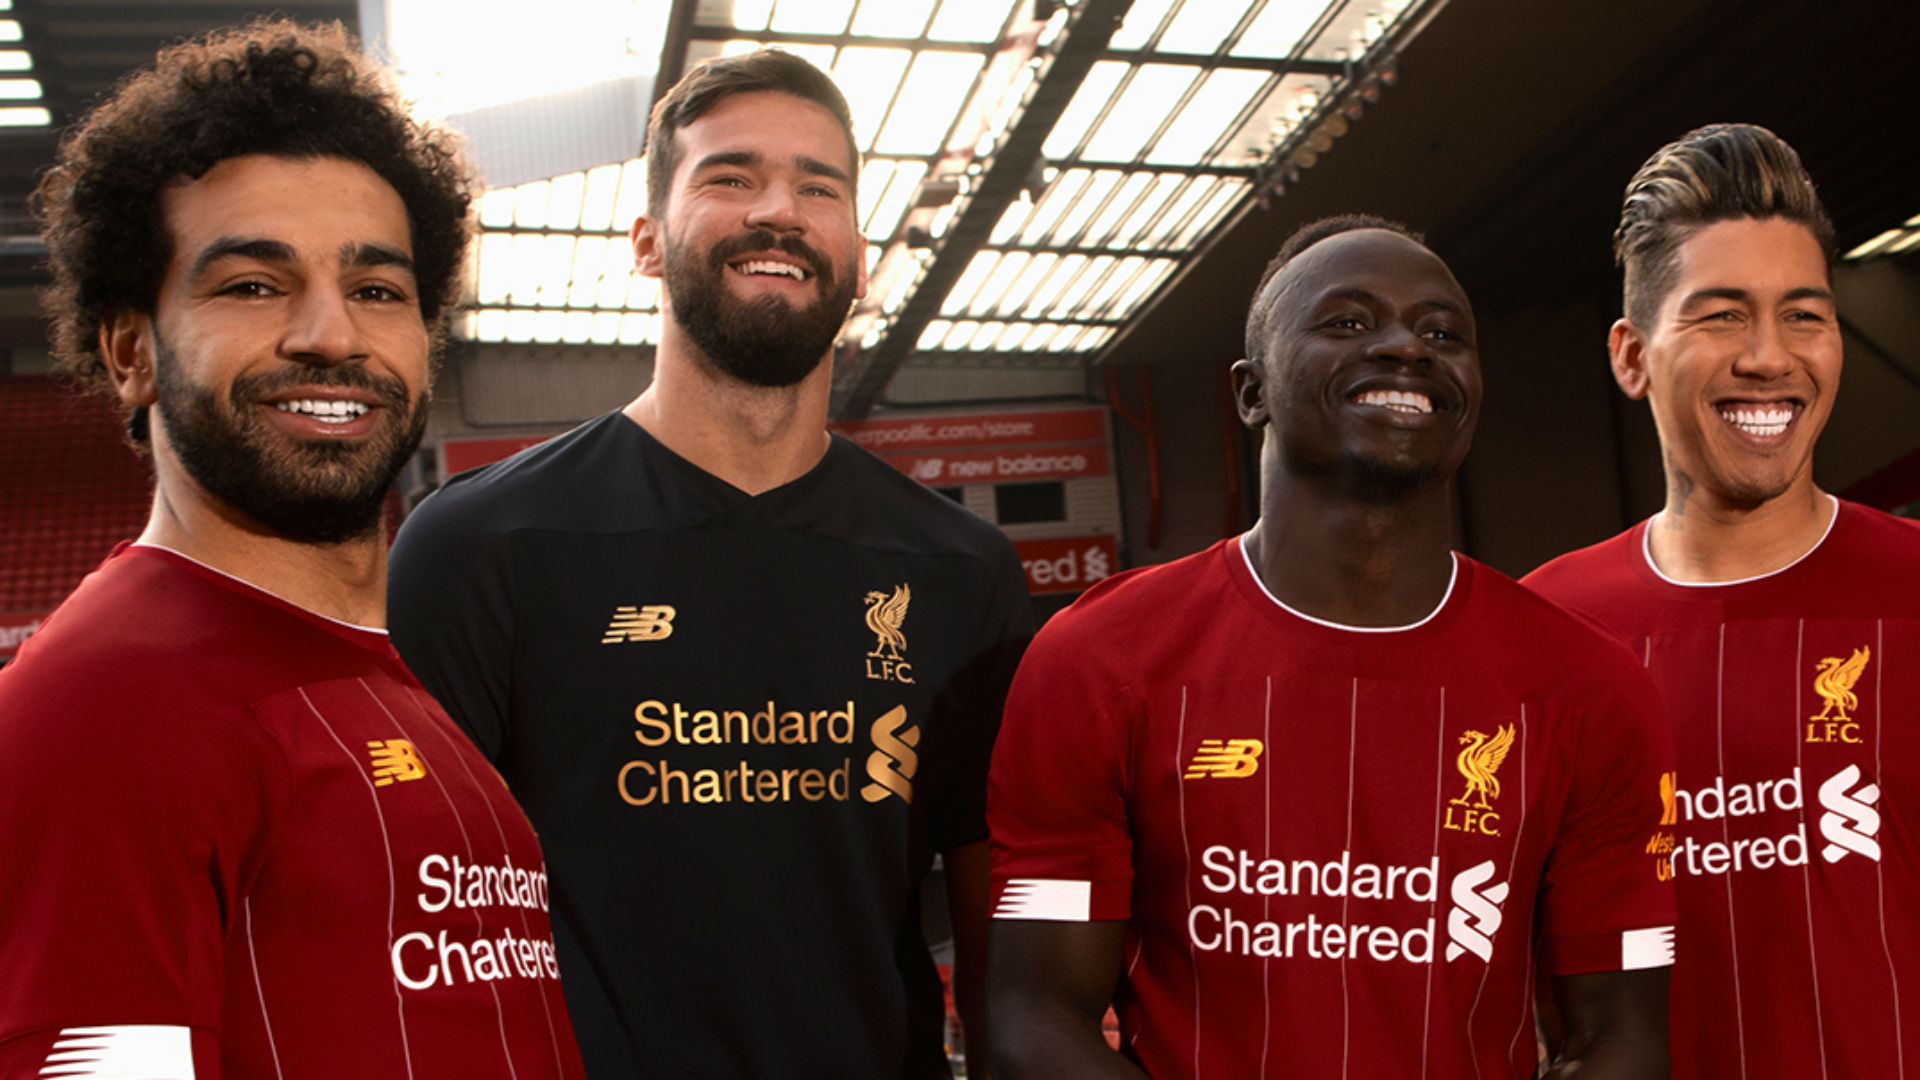 What we love about LFC's 2019-20 home kit